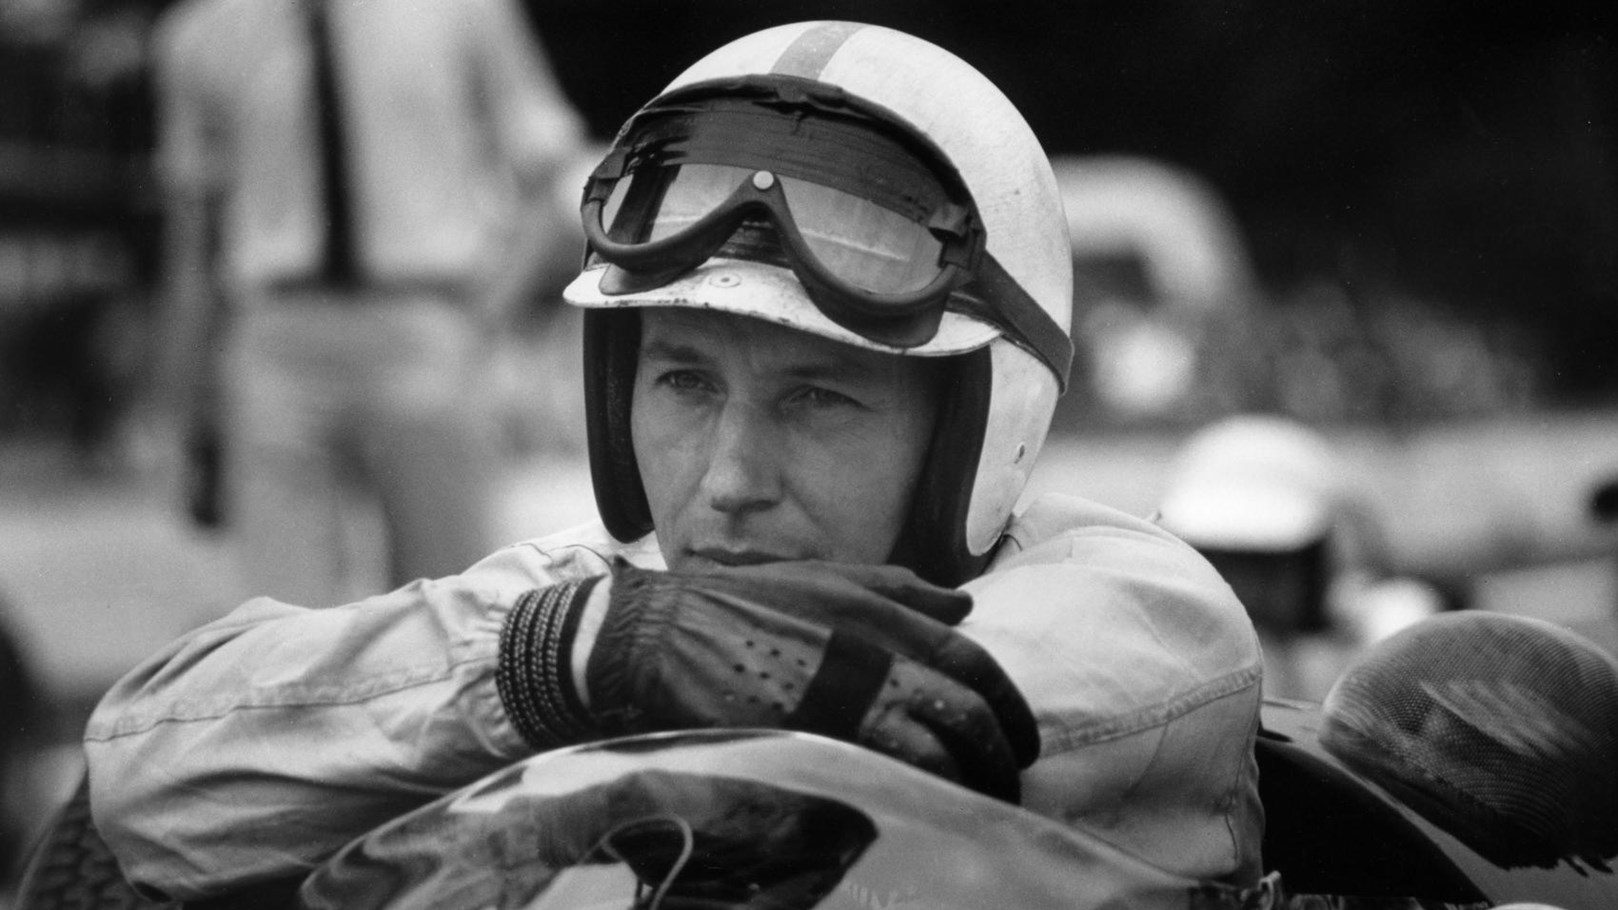 John_Surtees,_only_man_to_be_World_Champion_on_two_and_four_wheels